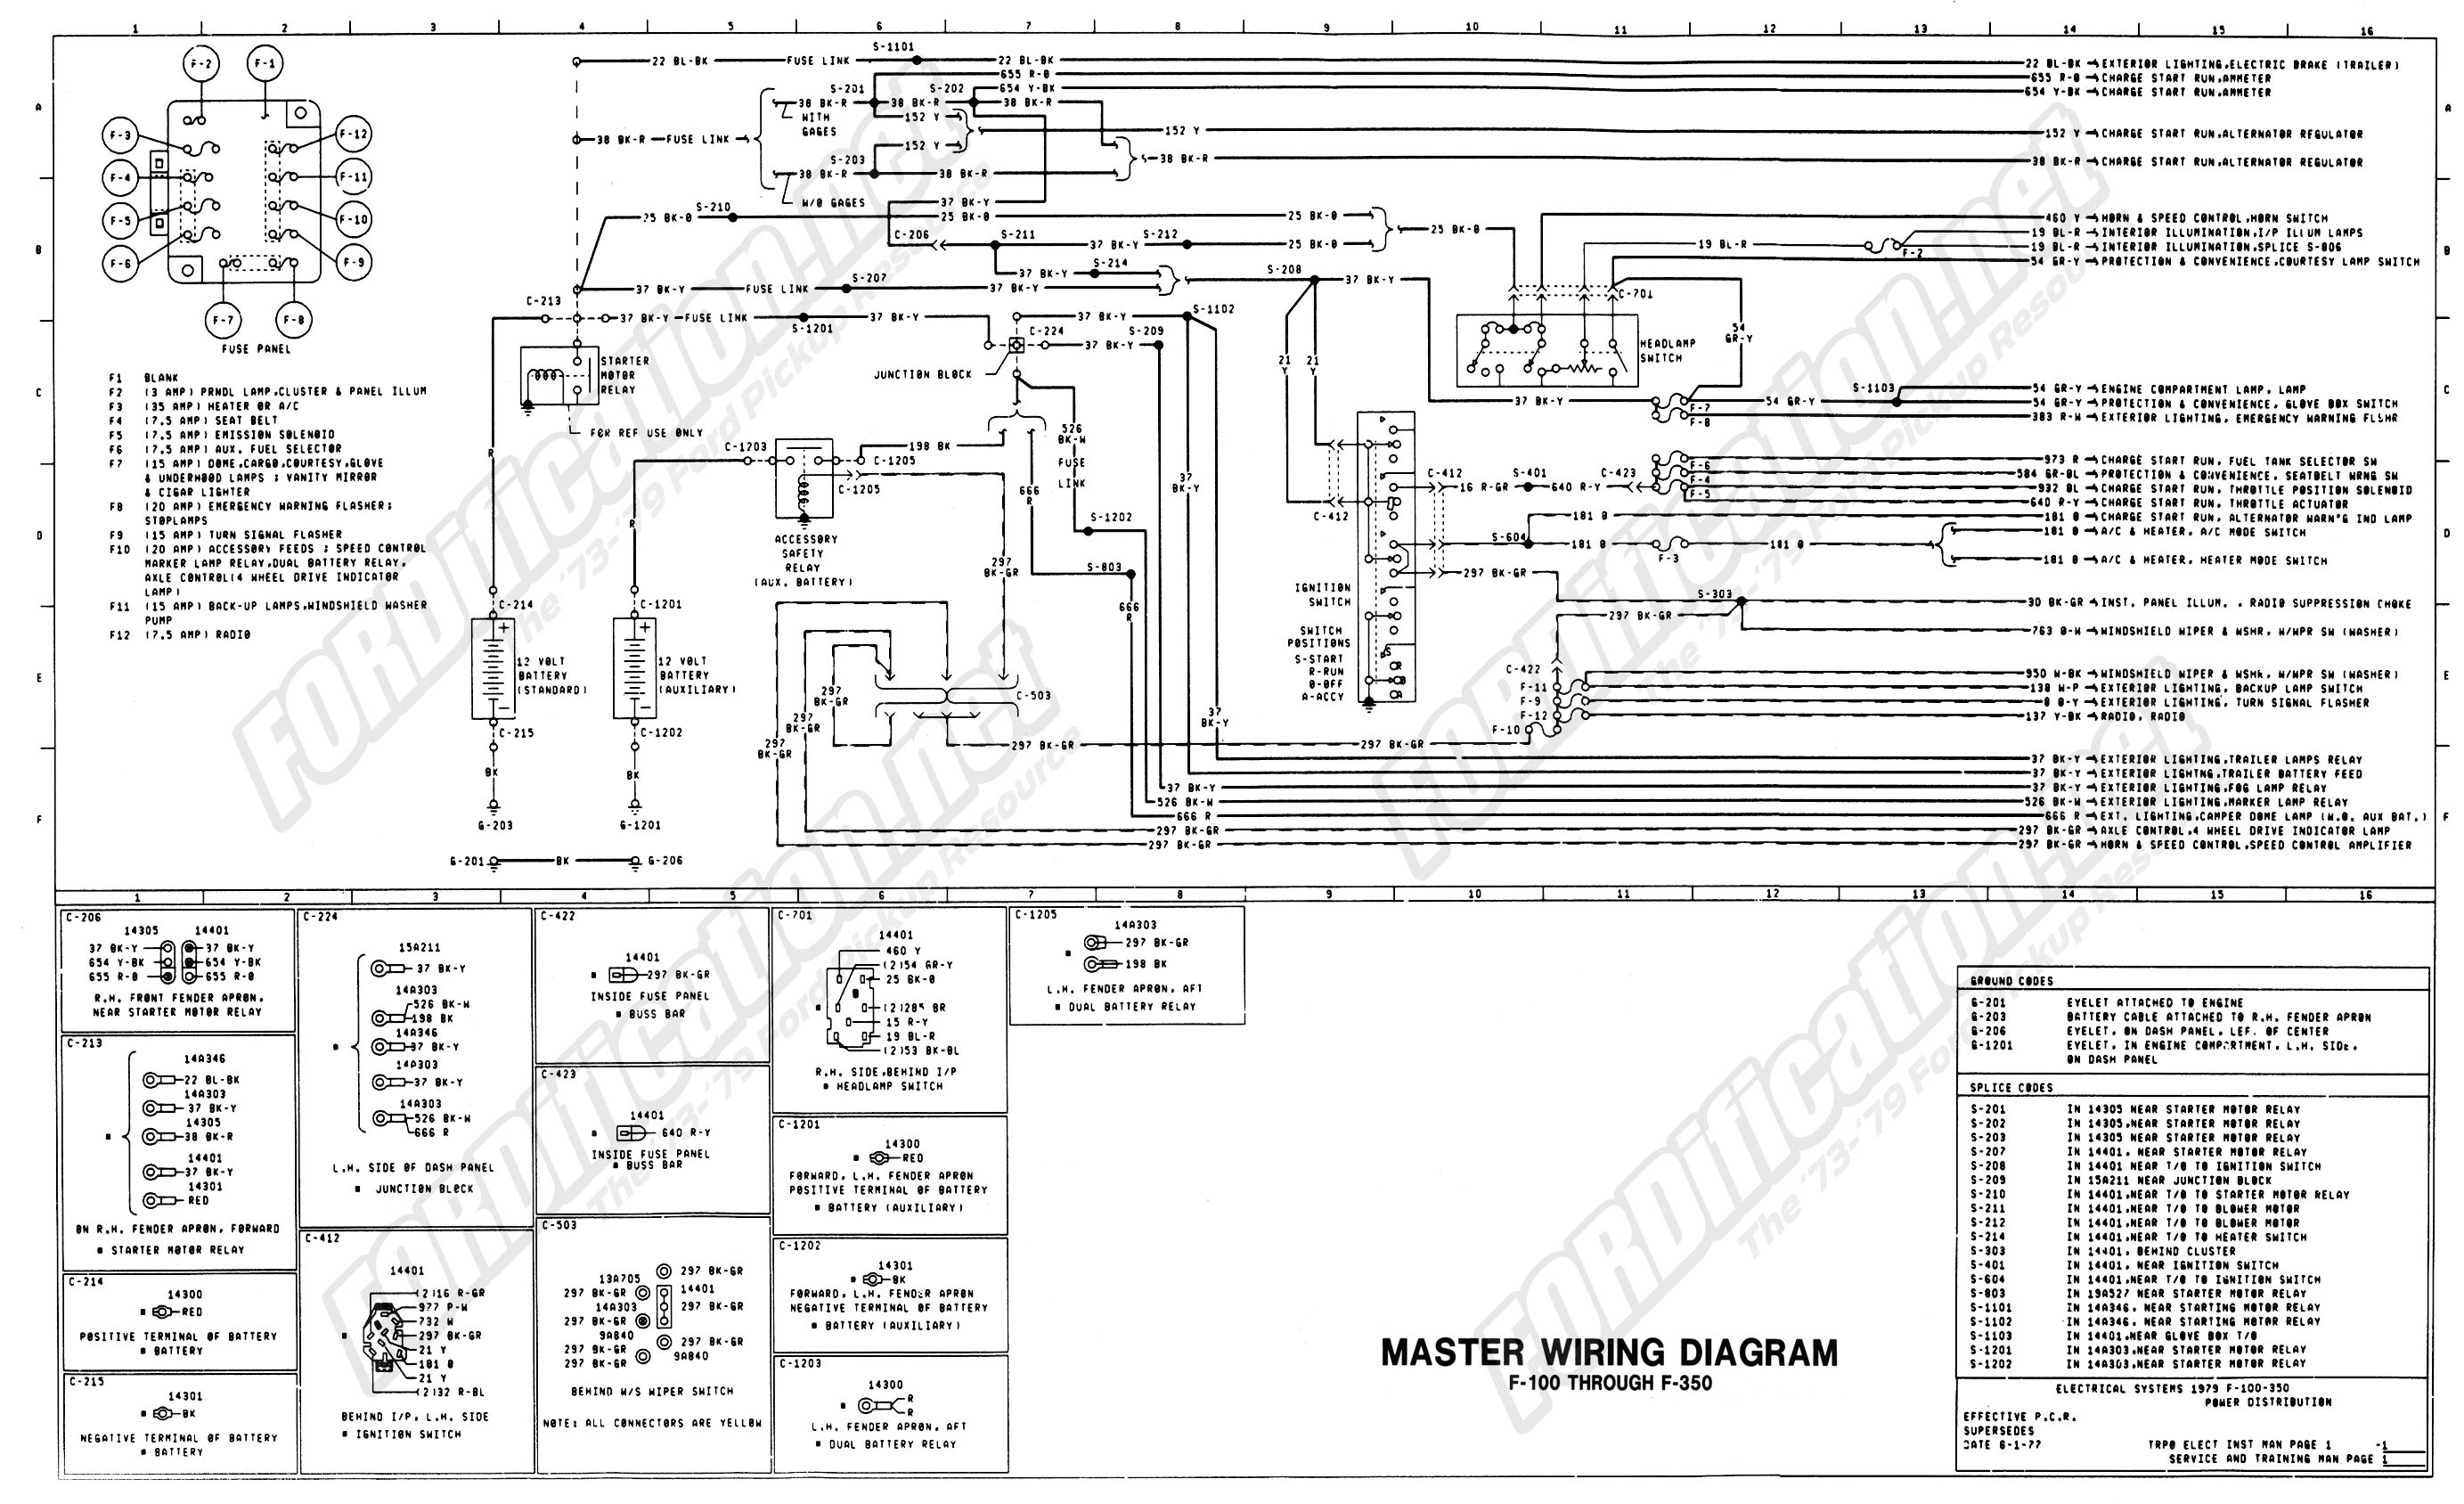 ford stereo wiring diagram Download-wiring 79master 1of9 16-k